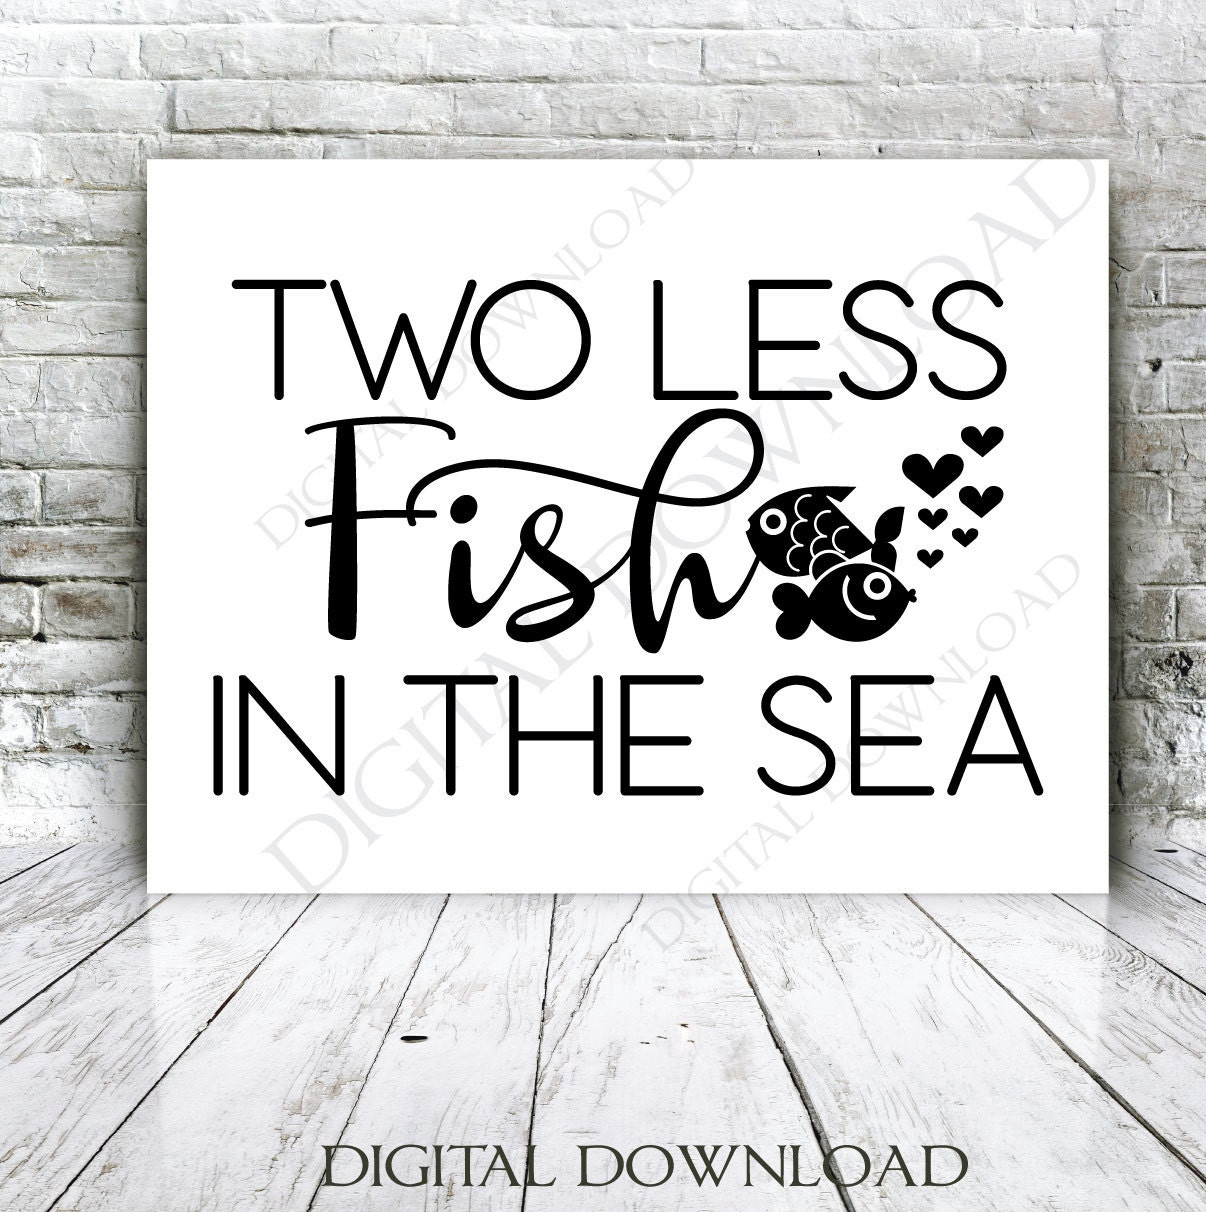 Two less fish in the sea quote vector digital design download for Two less fish in the sea